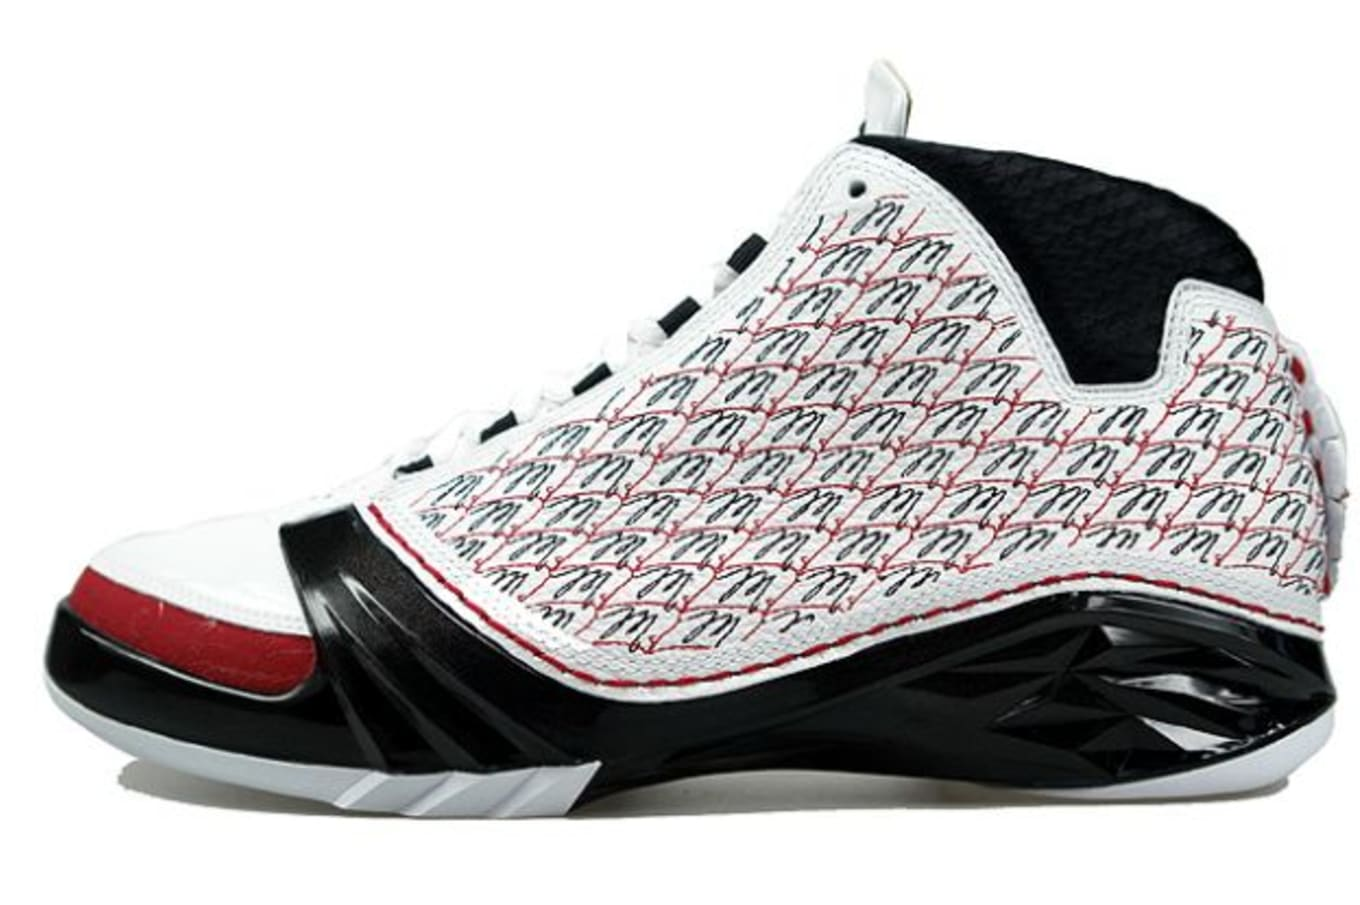 super popular 85970 ceac4 By the time the Air Jordan 23 hit in 2008 the all-over print craze was all  but over. This white-based upper helped call attention to that fact with  its ...